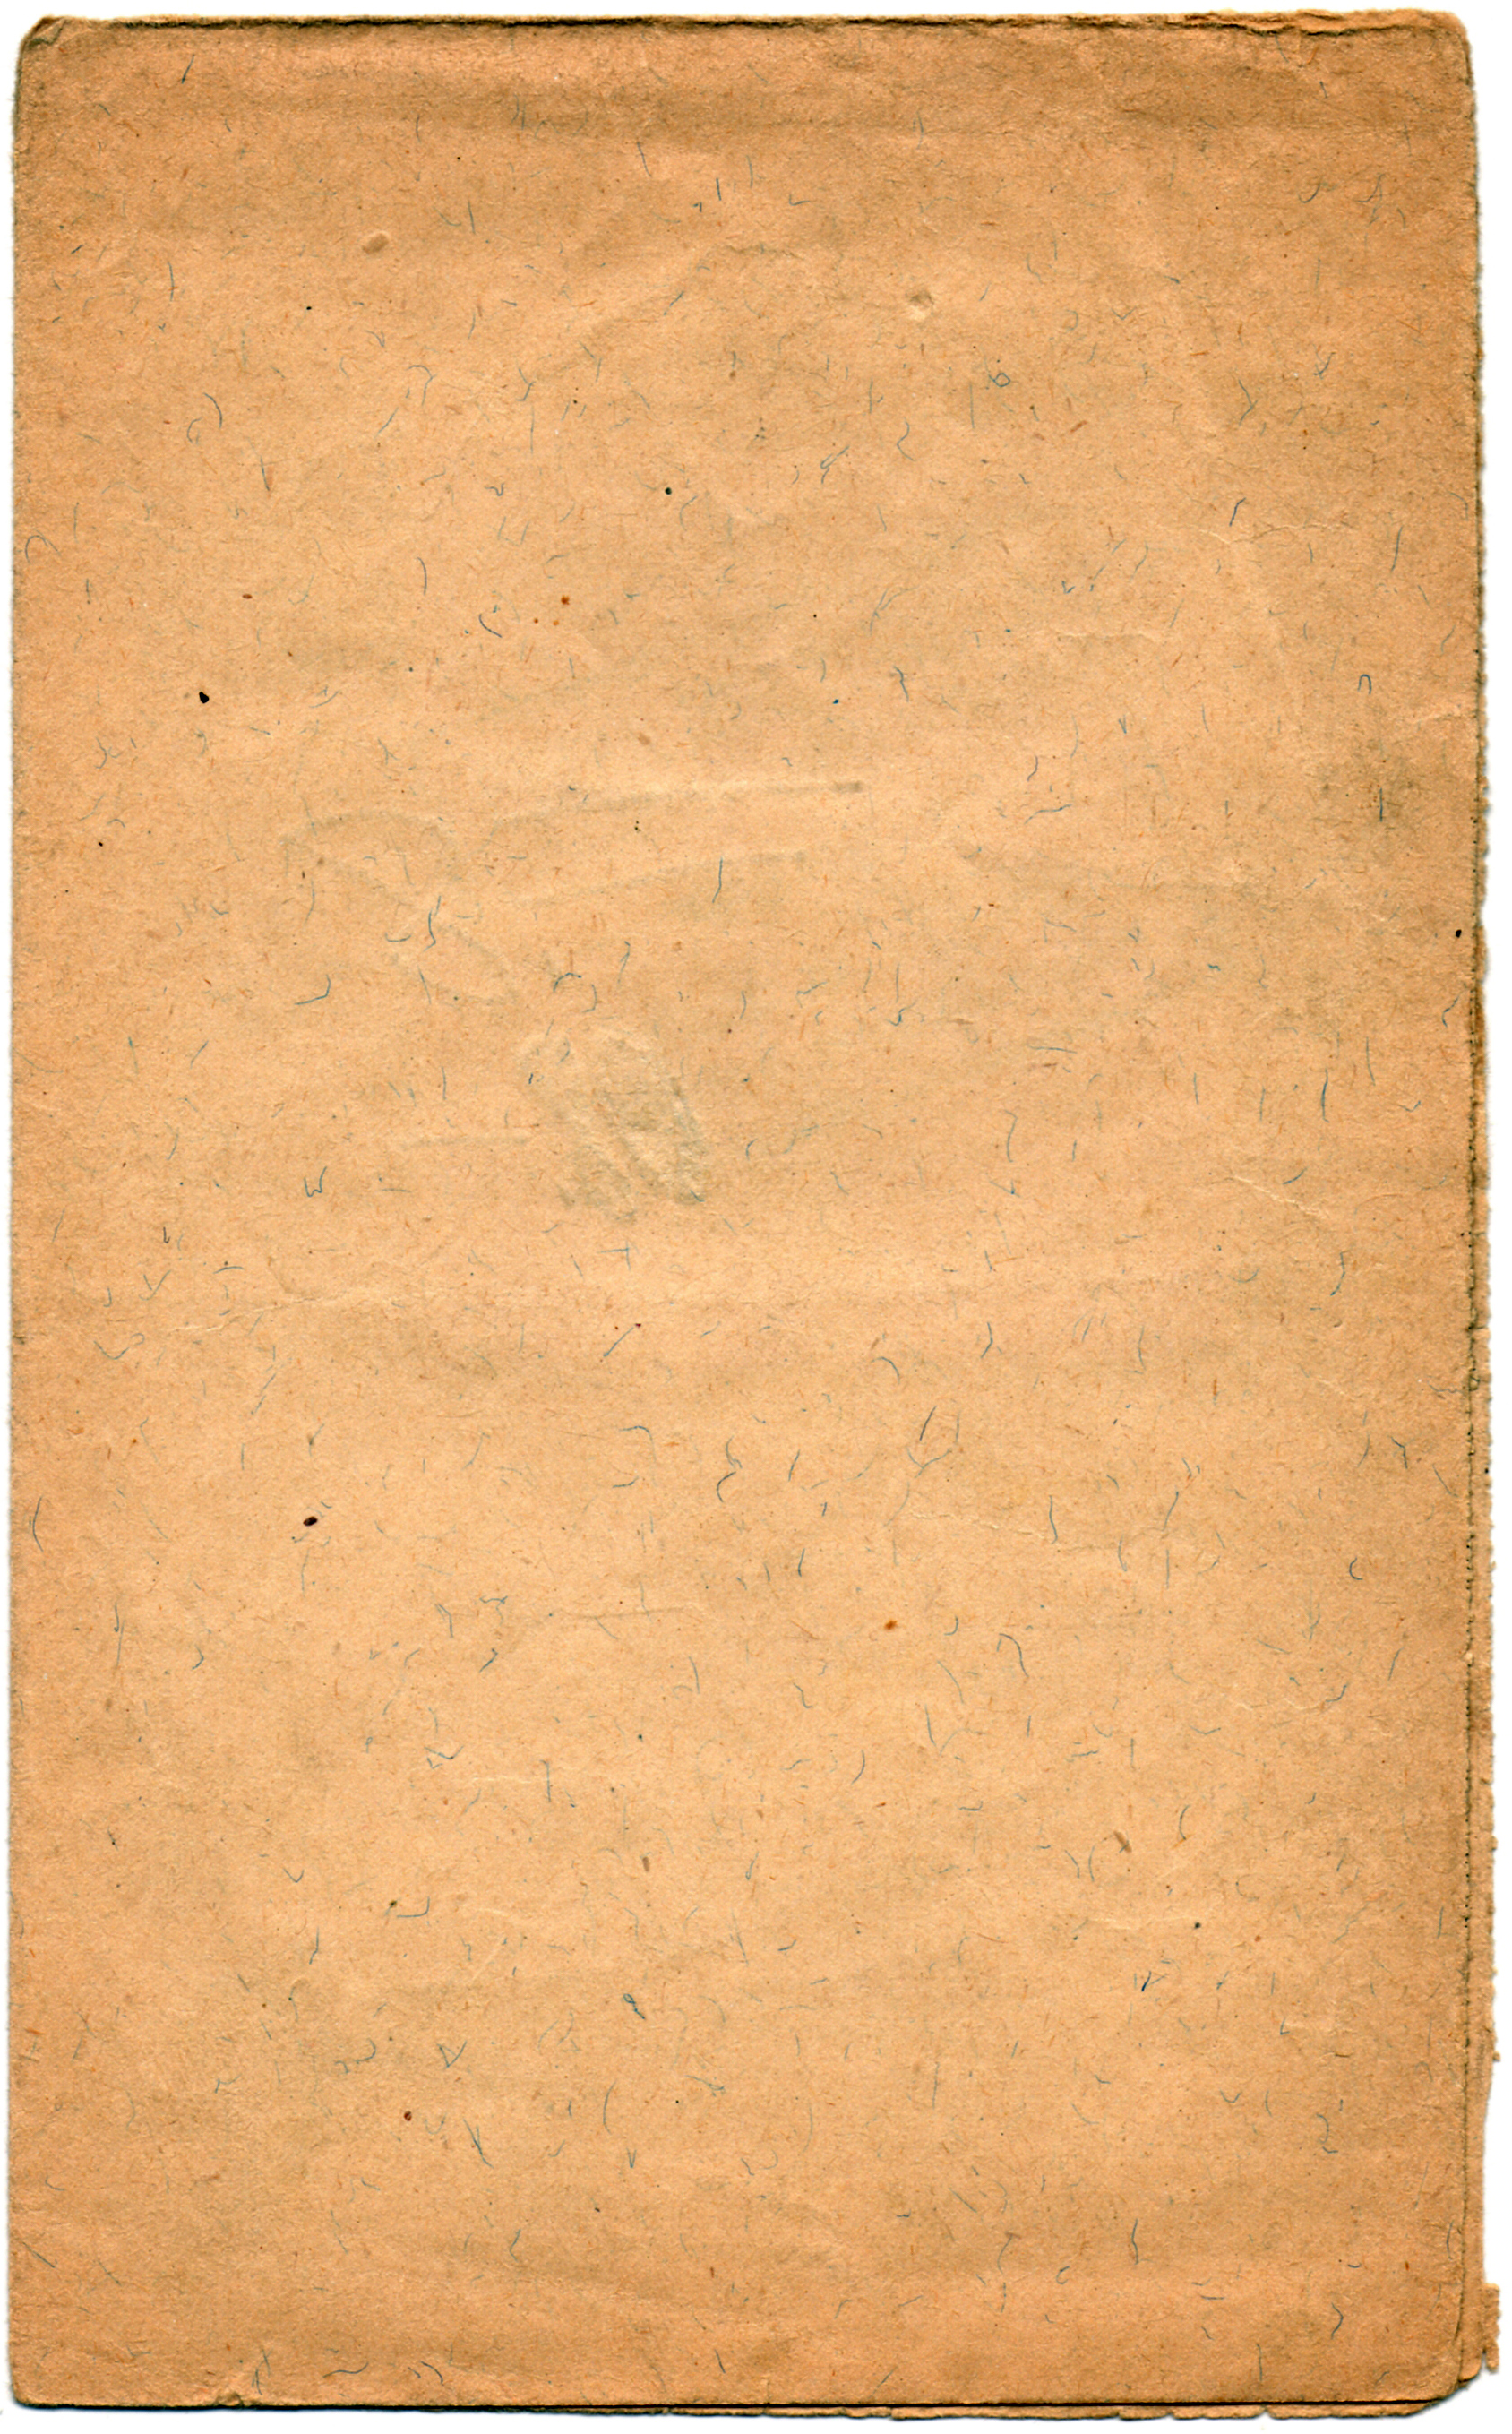 folded old paper texture III by riverta 1688x2717